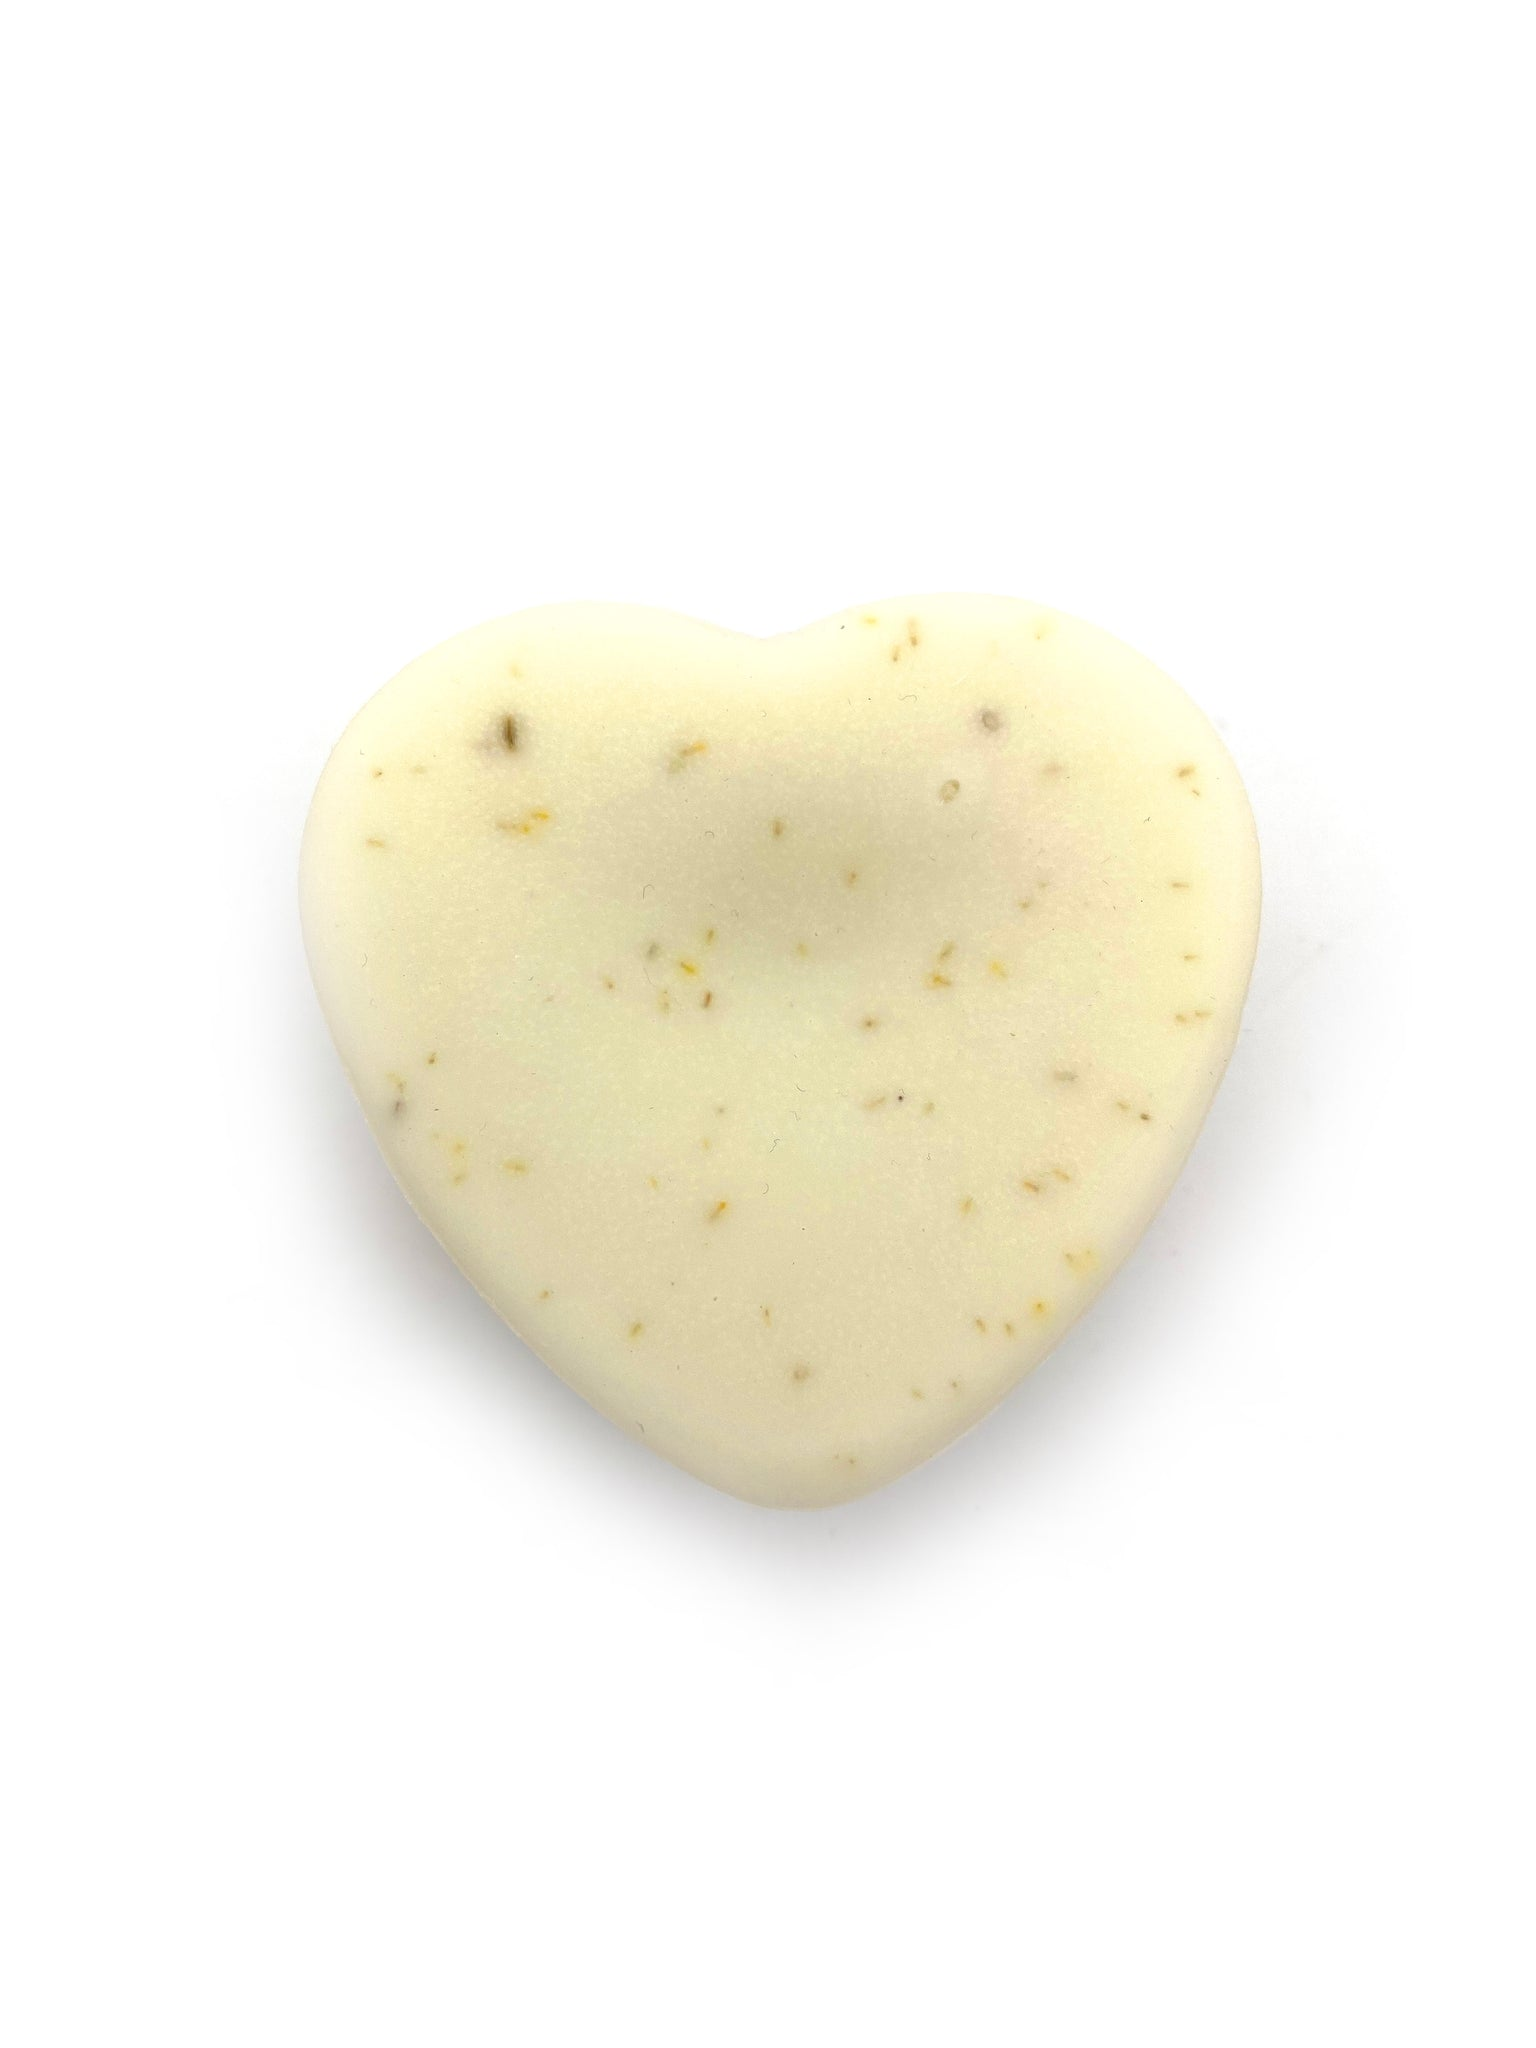 Lavender Chamomile Conditioner Bar 3oz heart - The Apothecary Fairy